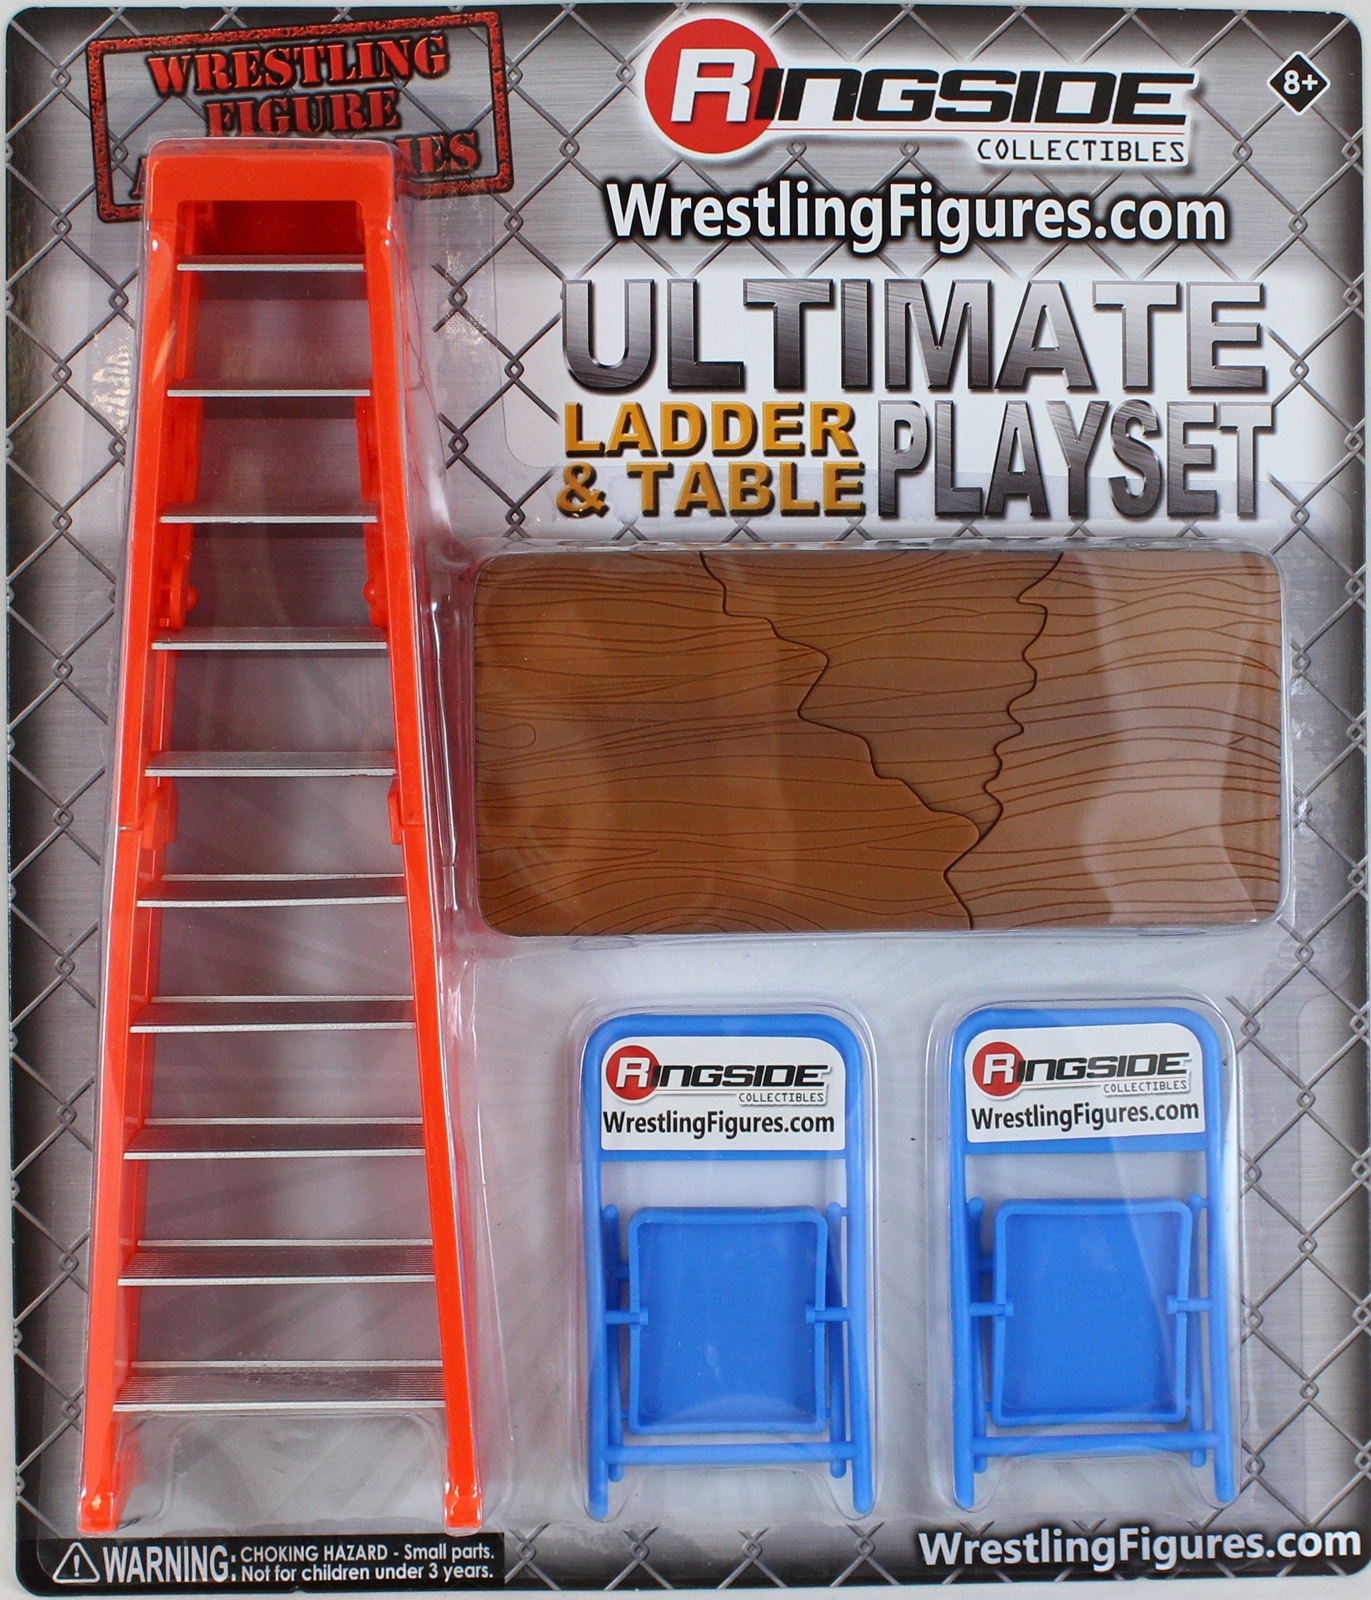 Ultimate Ladder & Table Playset (Orange) - Ringside Collectibles Exclusive  Toy Wrestling Action Figure Accessories